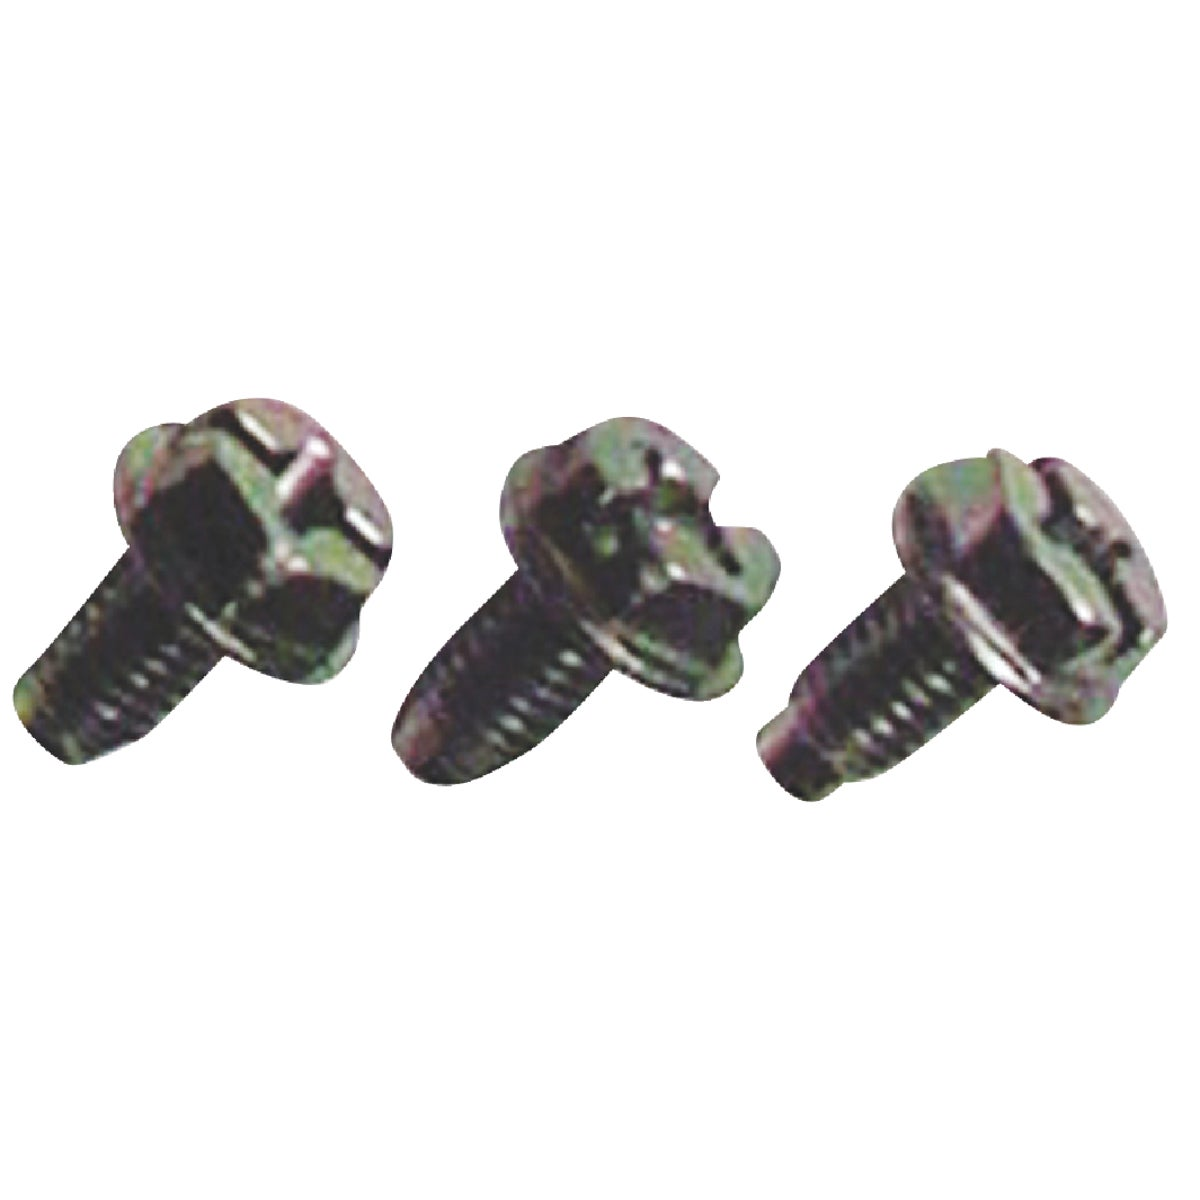 12PK GROUNDING SCREW - GGS-1512R by G B Electrical Inc